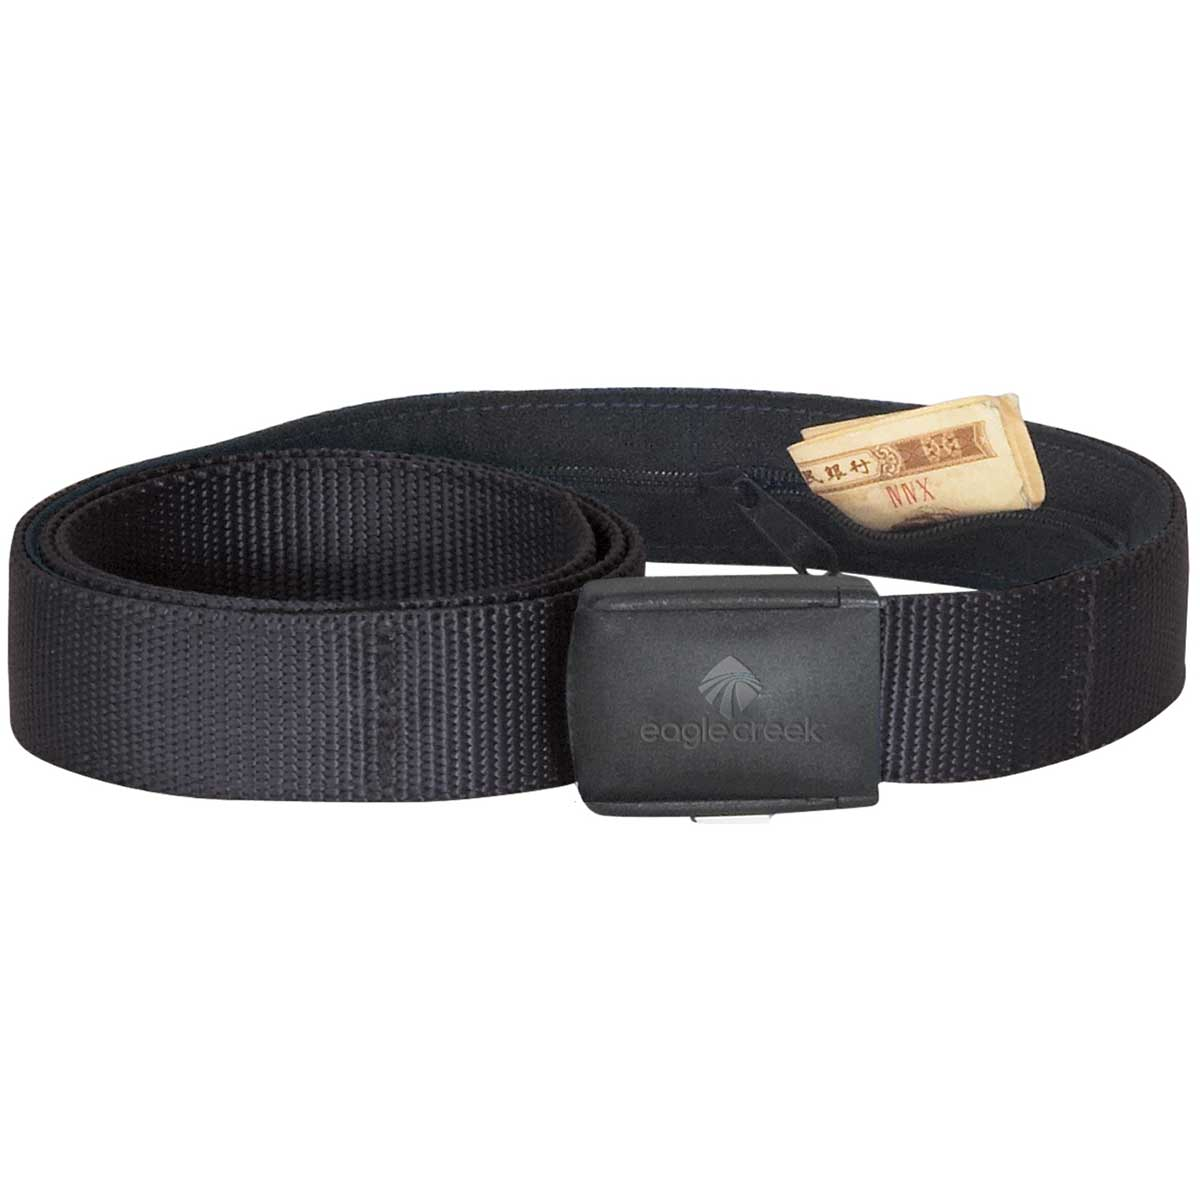 Eagle Creek All Terrain Money Belt in Black